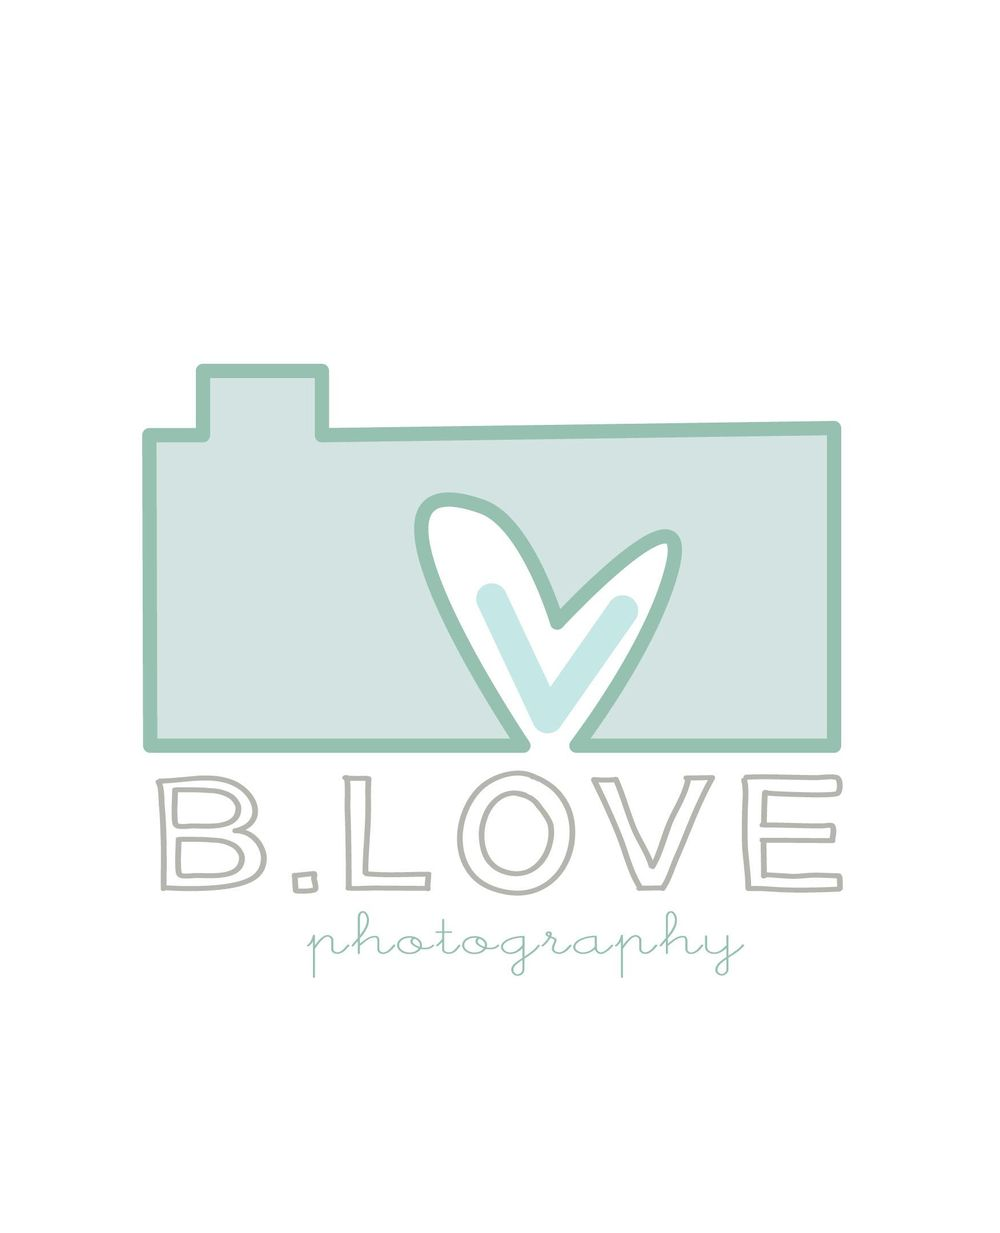 B.love Photography Logo - image 1 - student project